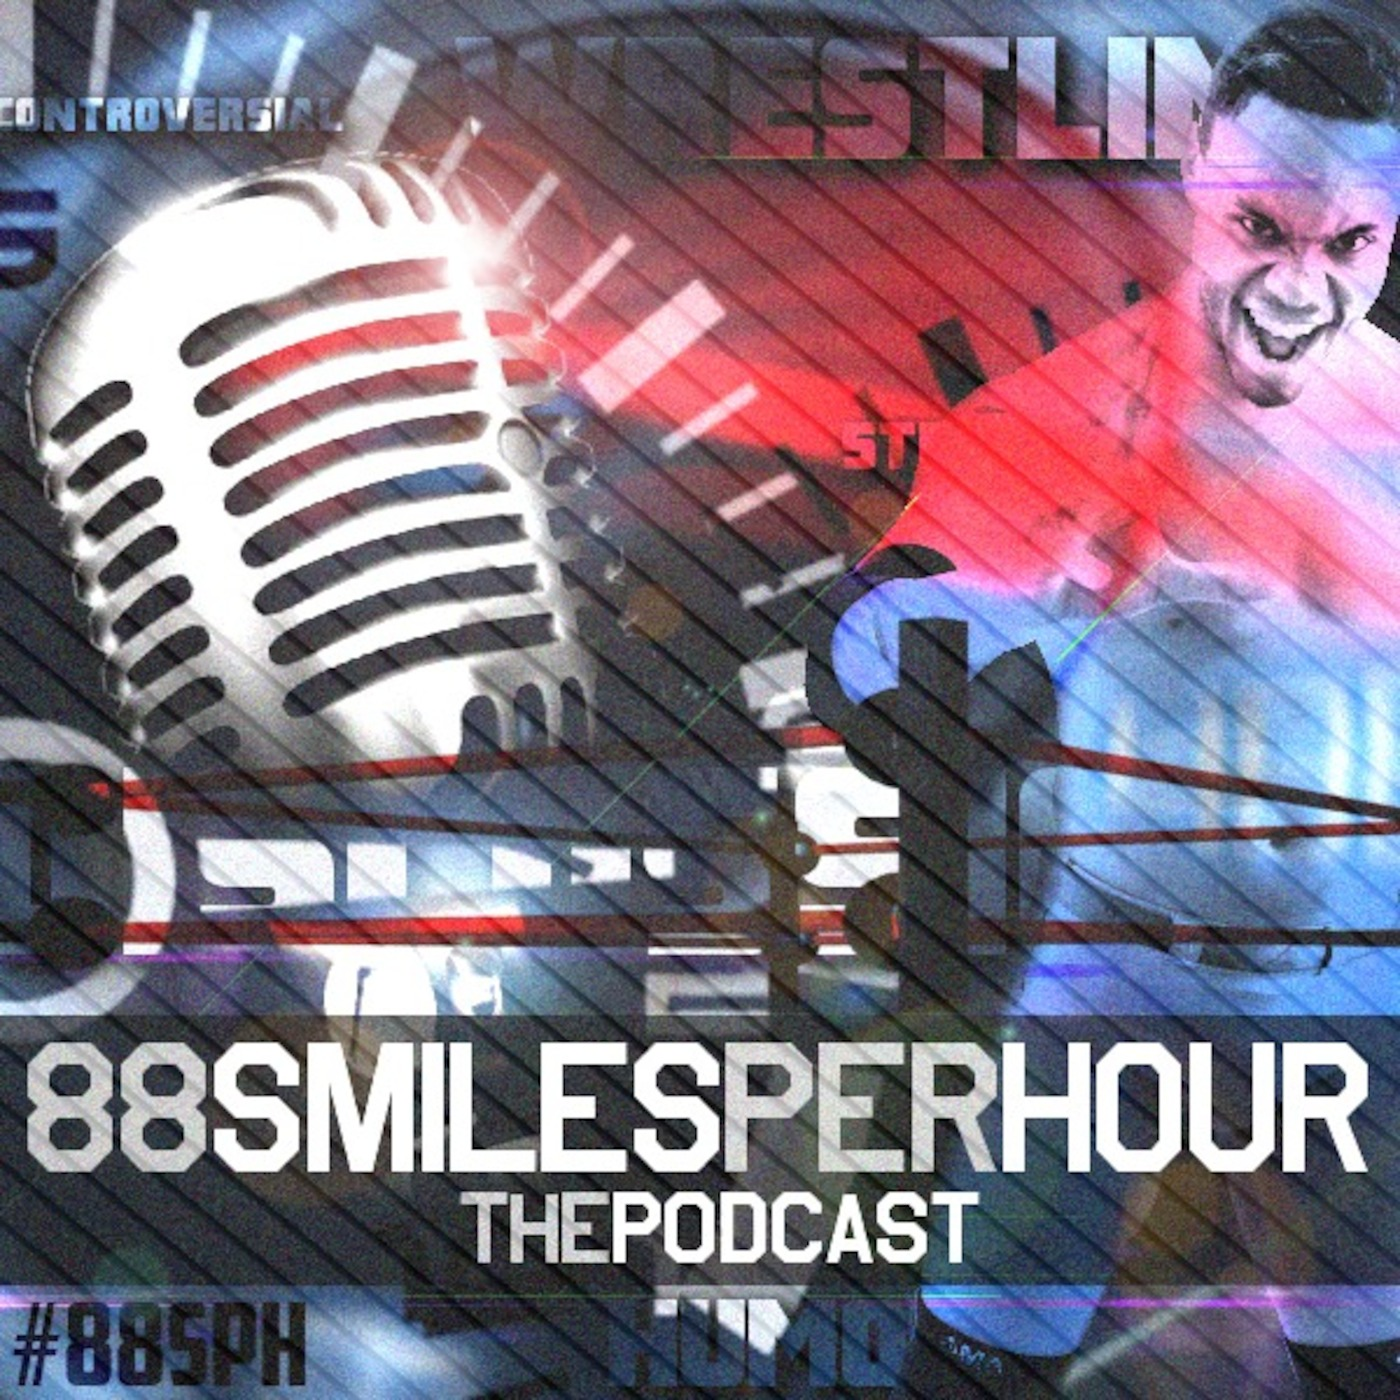 88 Smiles per Hour - The Podcast!